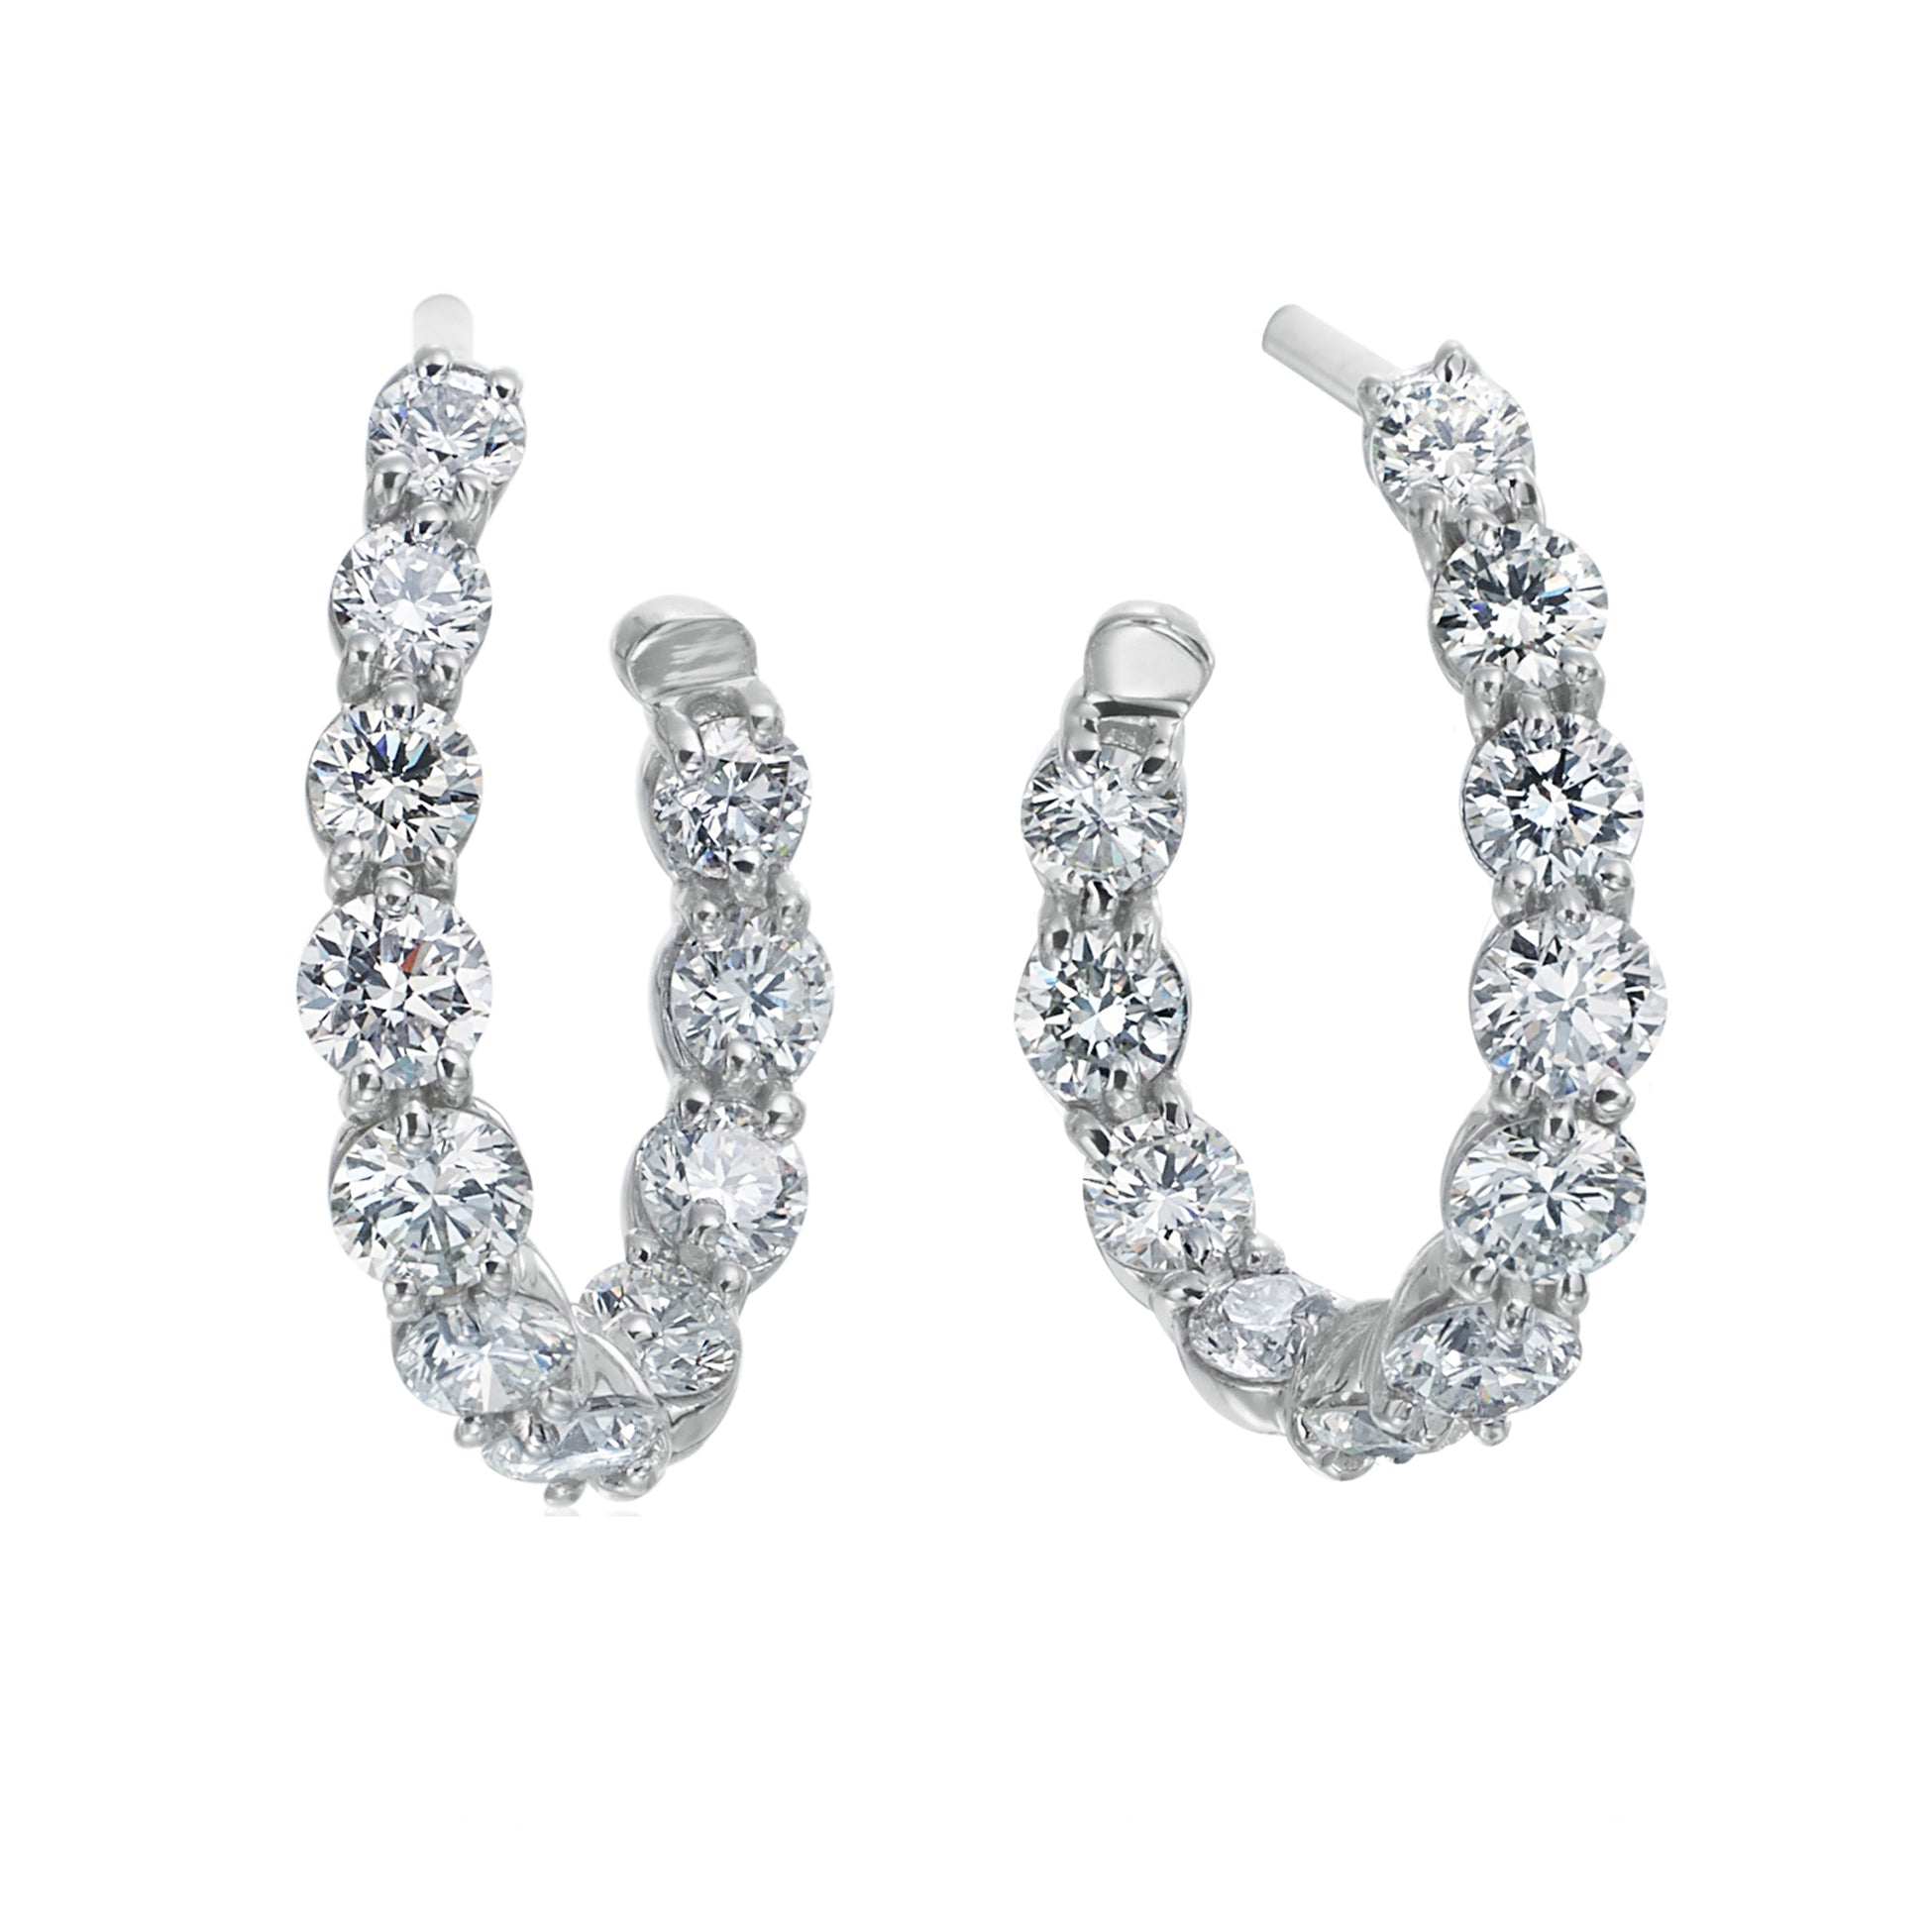 18K White Gold Diamond New Moon Hoop Earrings